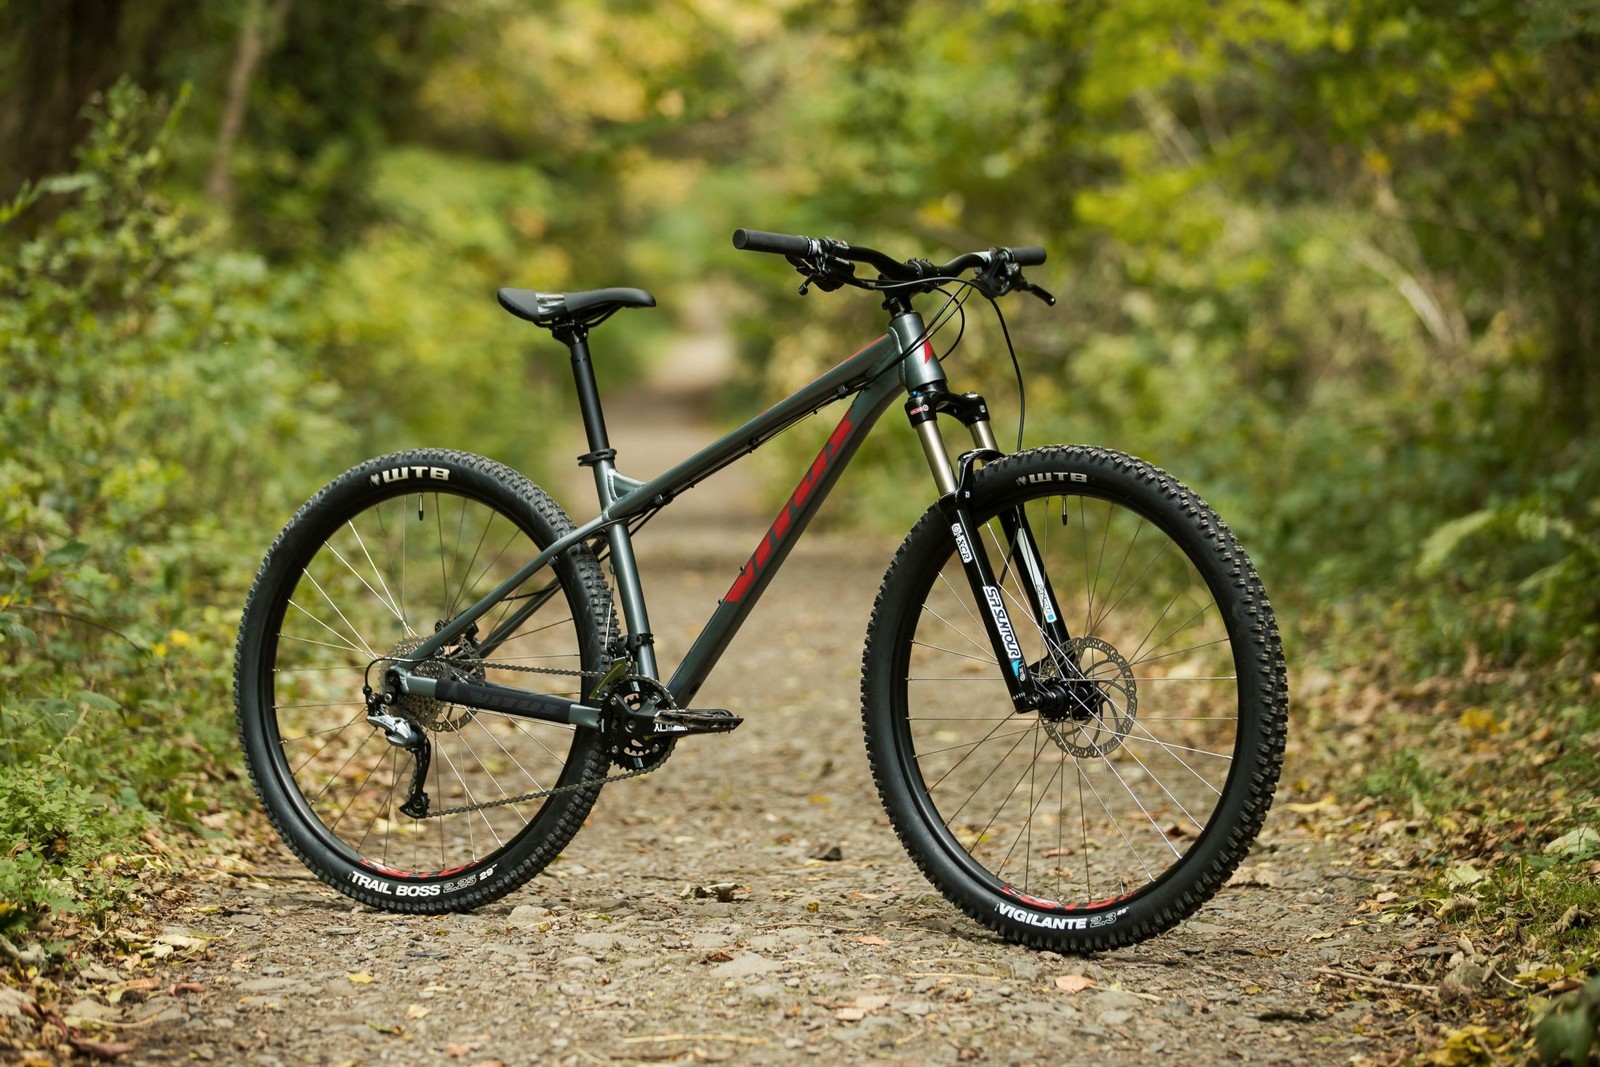 c4c3a8e1058 It's the foundation of the Vitus mountain bike range, with aggressive  geometry designed to get you hooked.